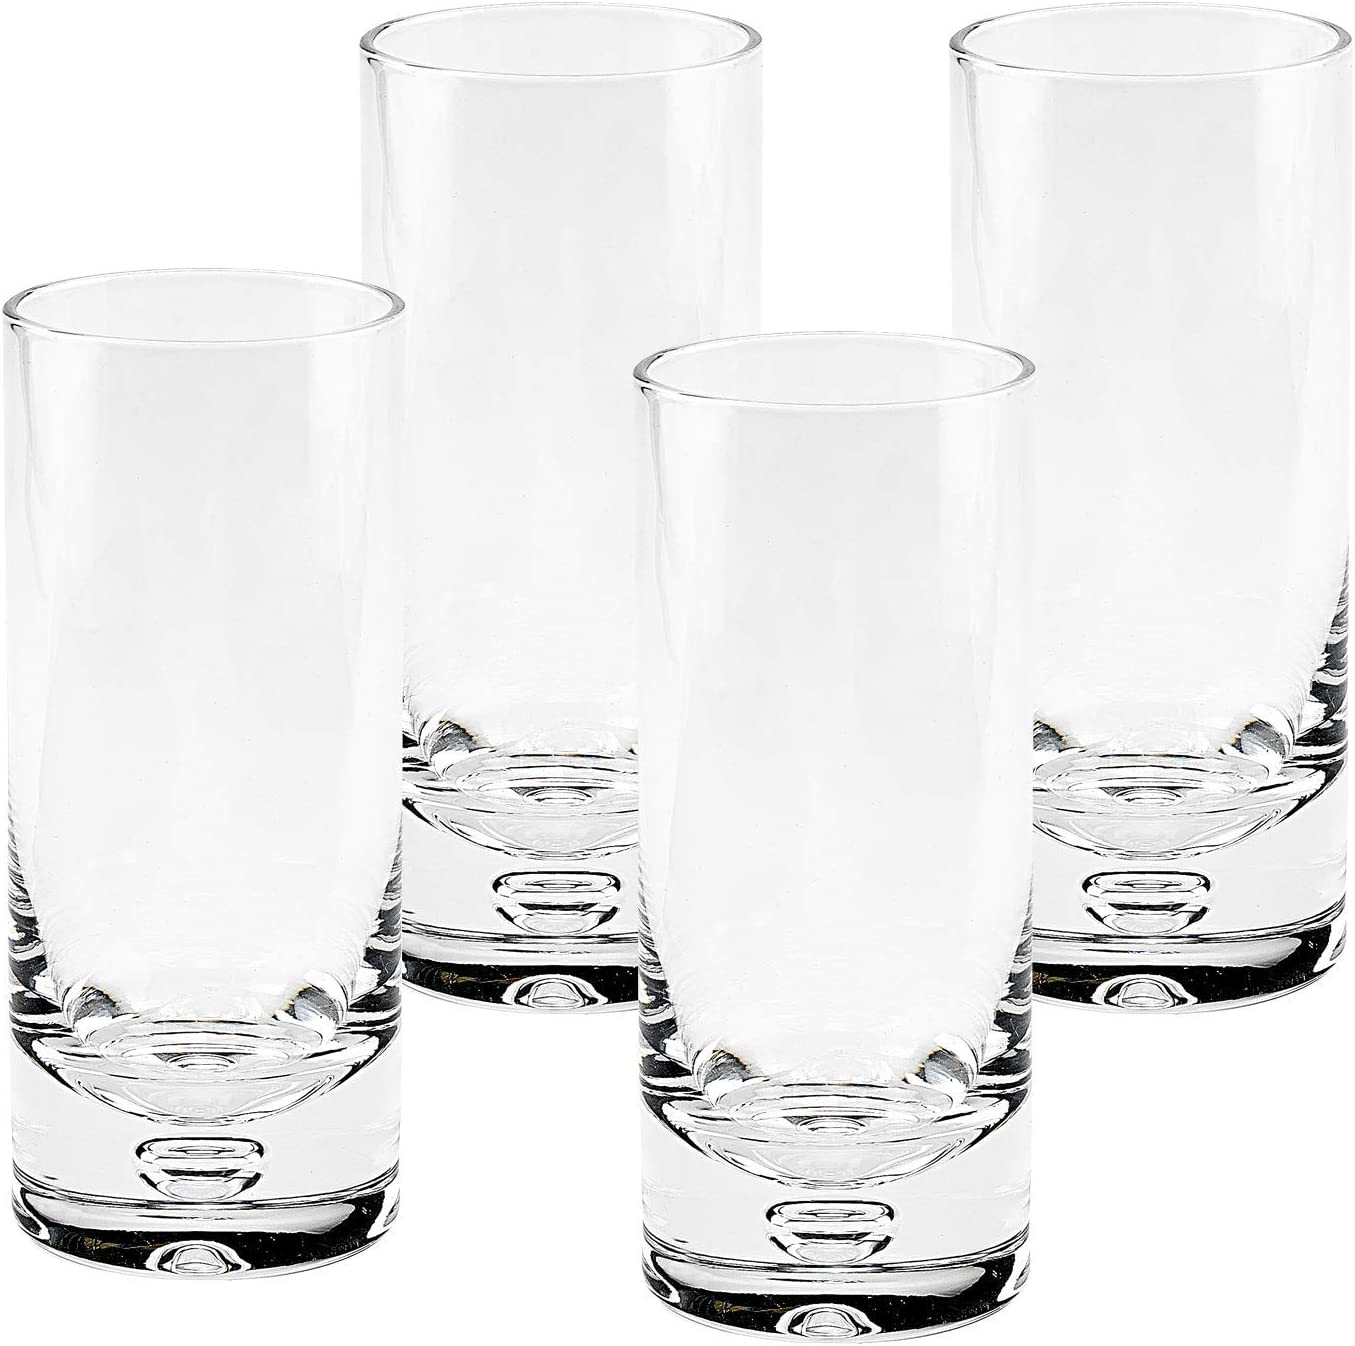 Amazon Com Badash Galaxy Crystal Highball Glasses 4 Piece Set 13 Oz Mouth Blown Tall Cocktail Glasses Mixed Drinks Glass Tumbler Fine Lead Free Crystal Glassware Highball Glasses Mixed Drinkware Sets